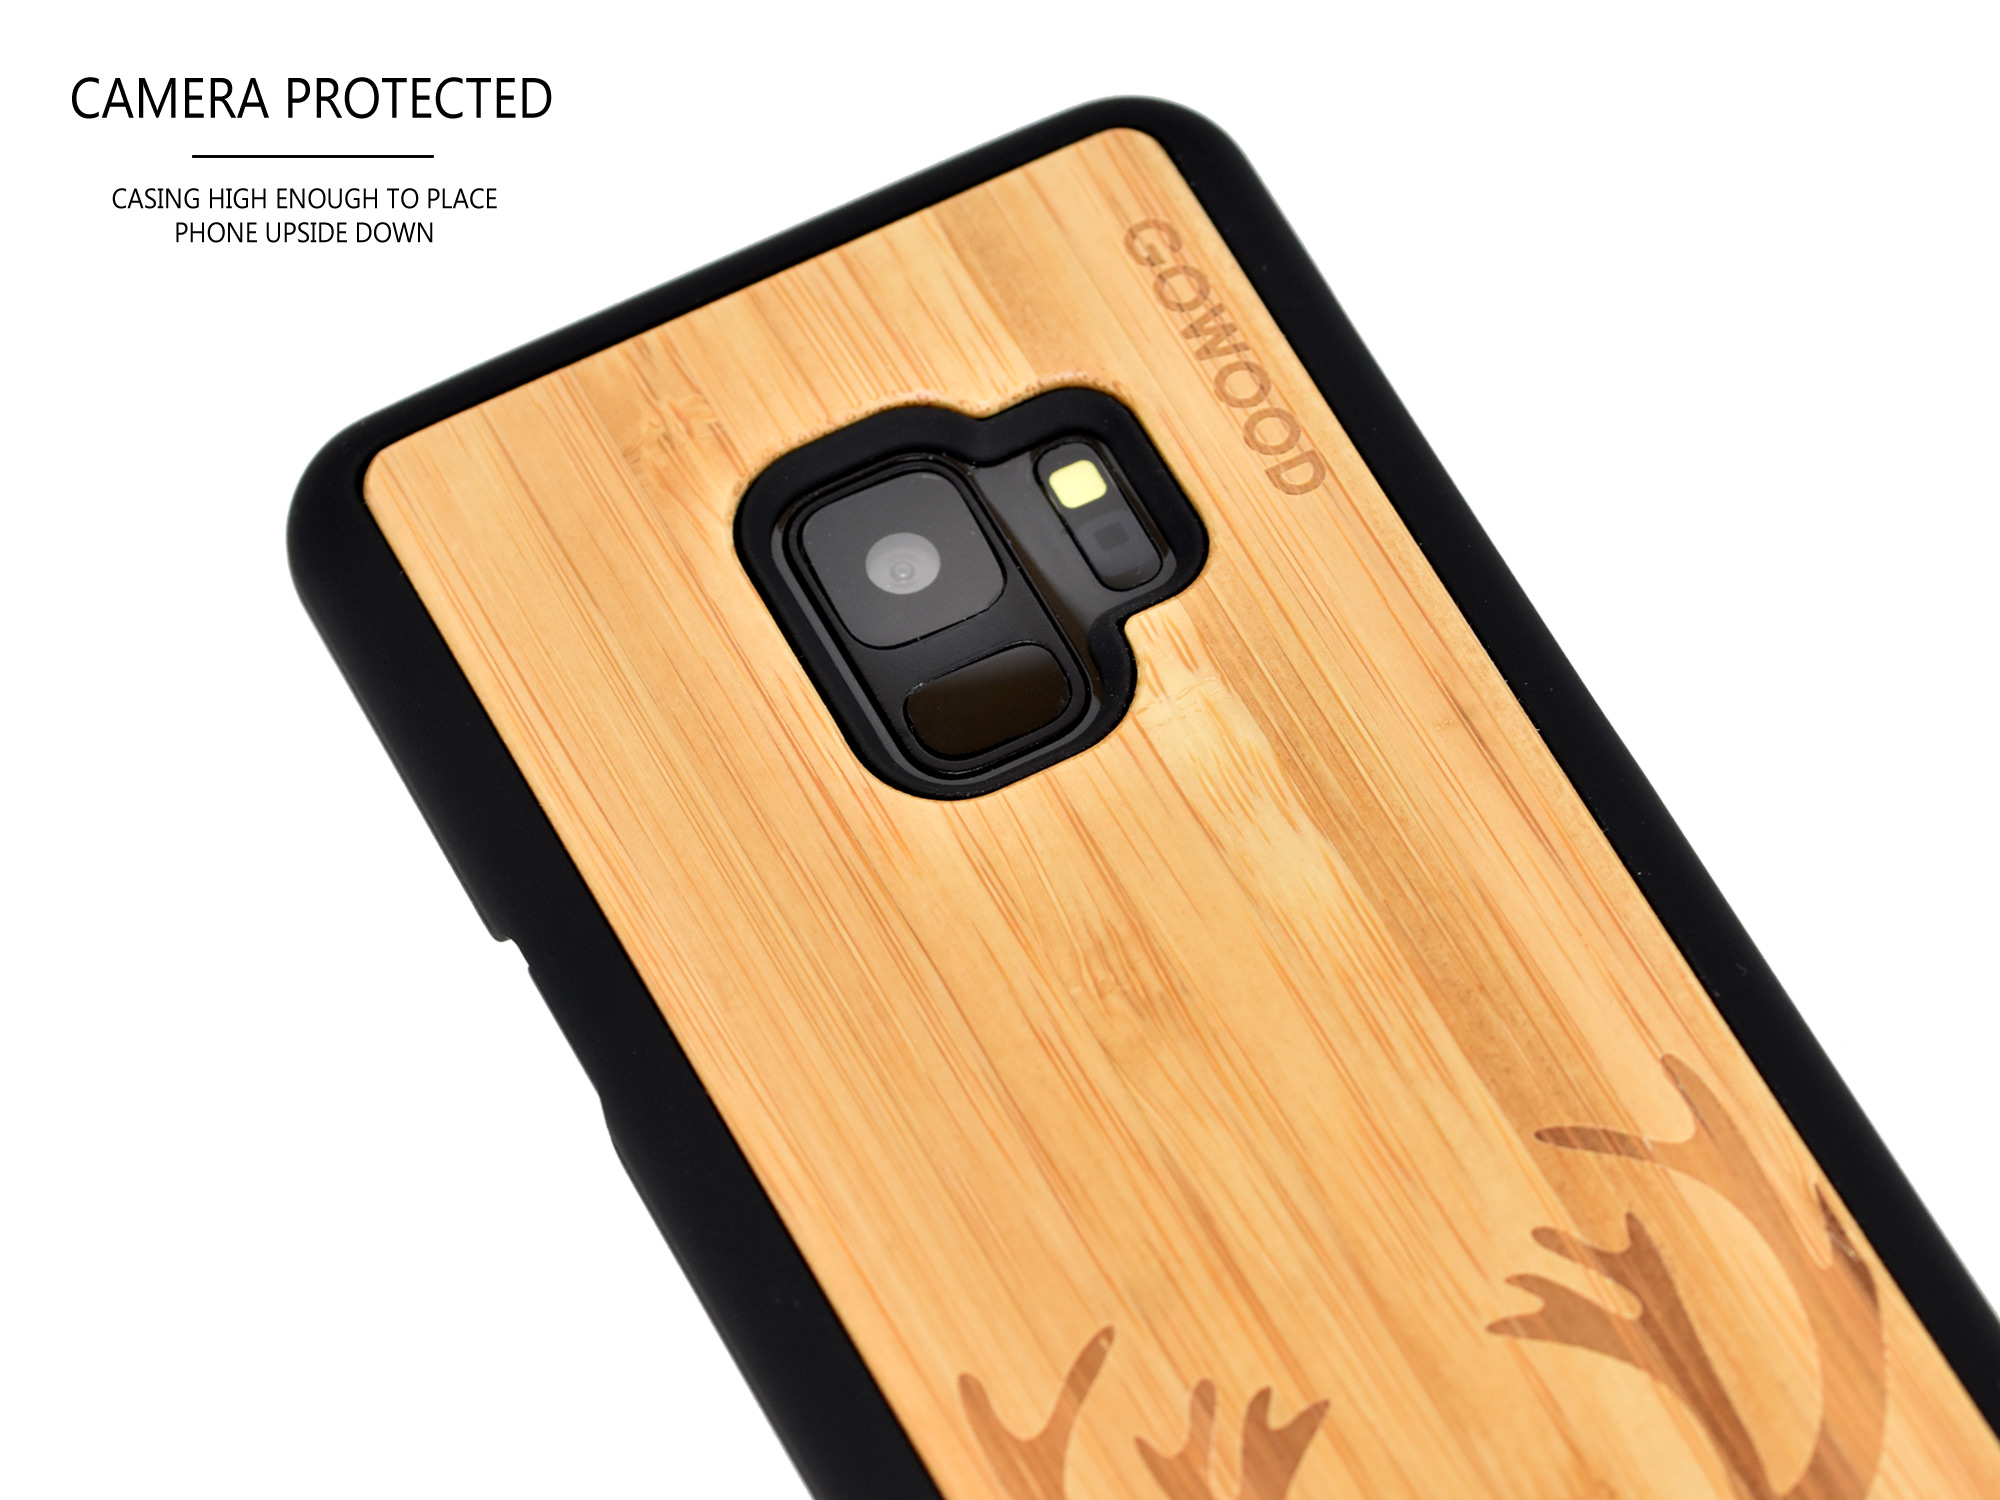 Samsung Galaxy S9 wood case bamboo deer